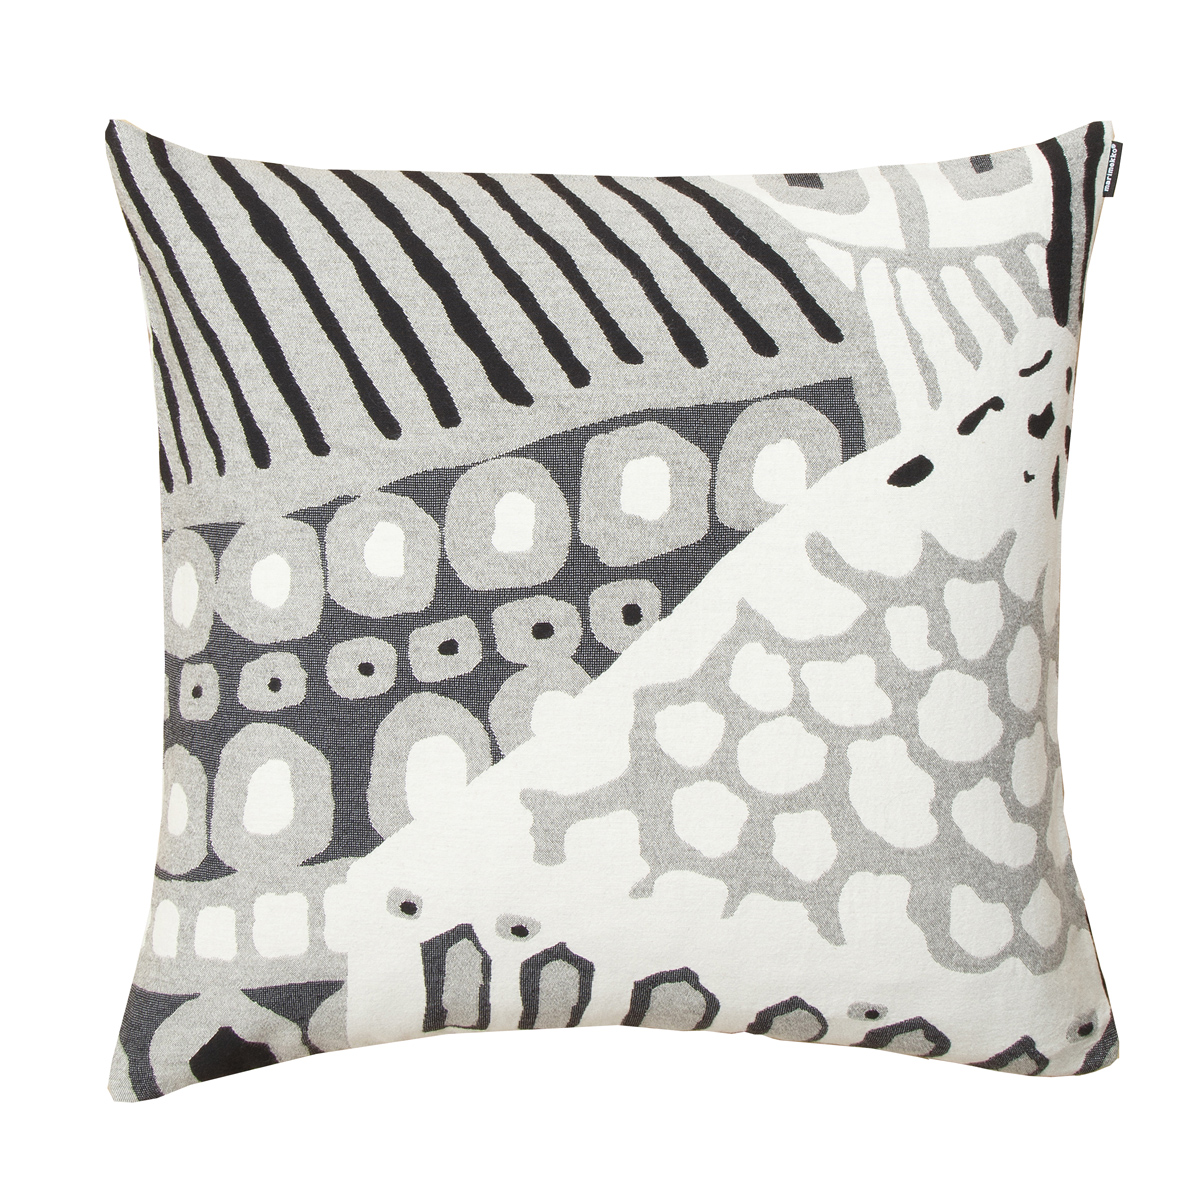 Jacquard Throw Pillows : Marimekko Kumiseva Grey / White / Black Jacquard Throw Pillow - Holiday Home Accents